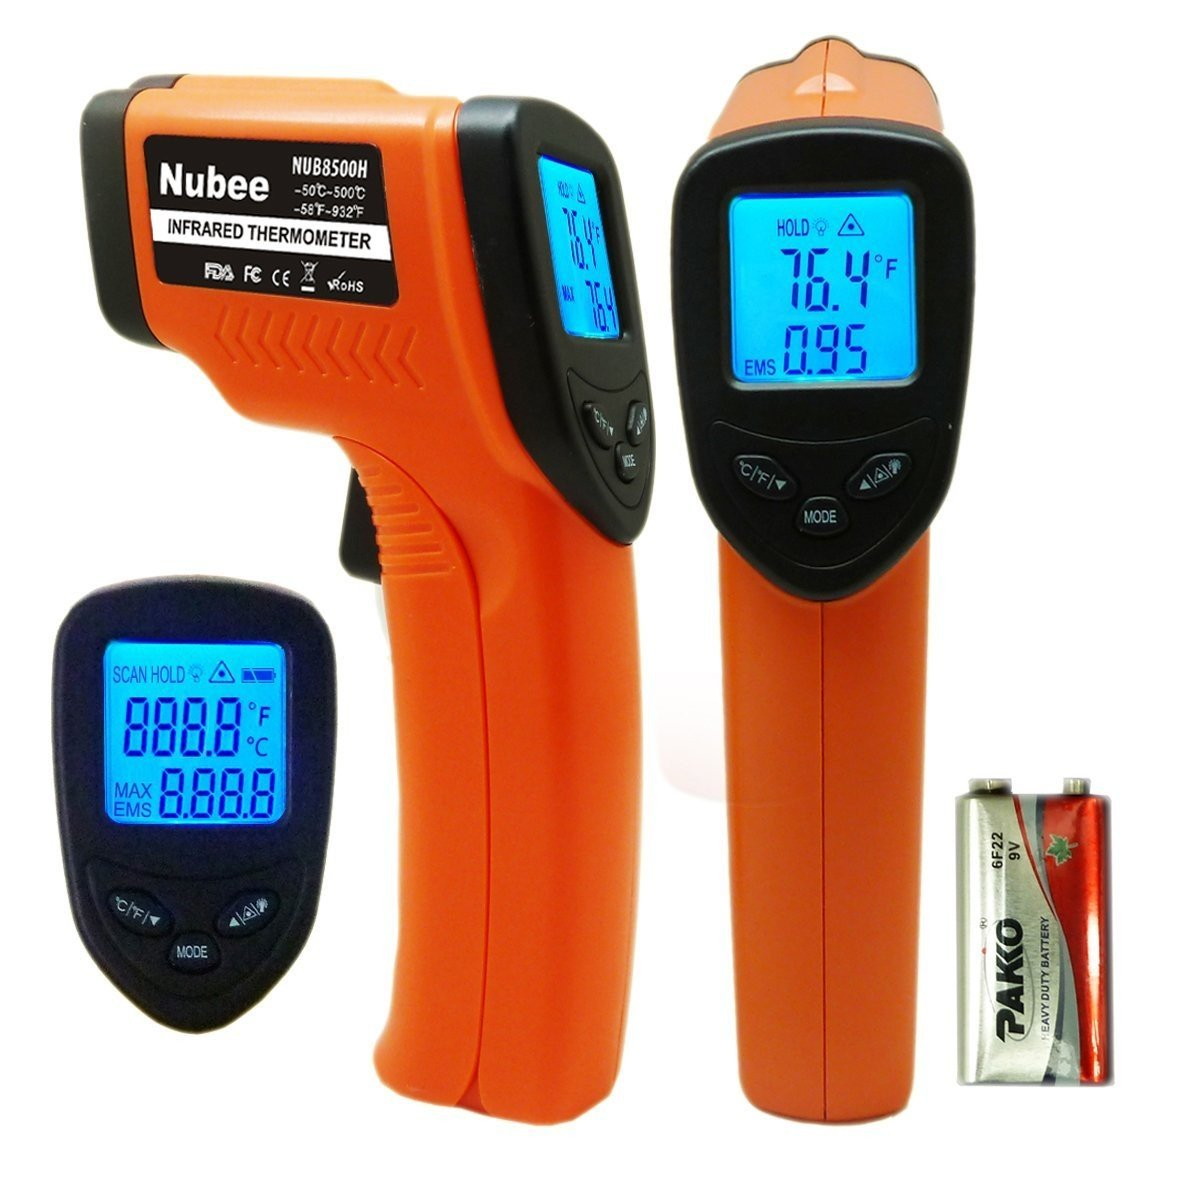 Nubee Temperature Gun Non-contact Infrared Thermometer MAX Display & EMS Adjustable -58℉~1022℉ (-50℃~550℃)